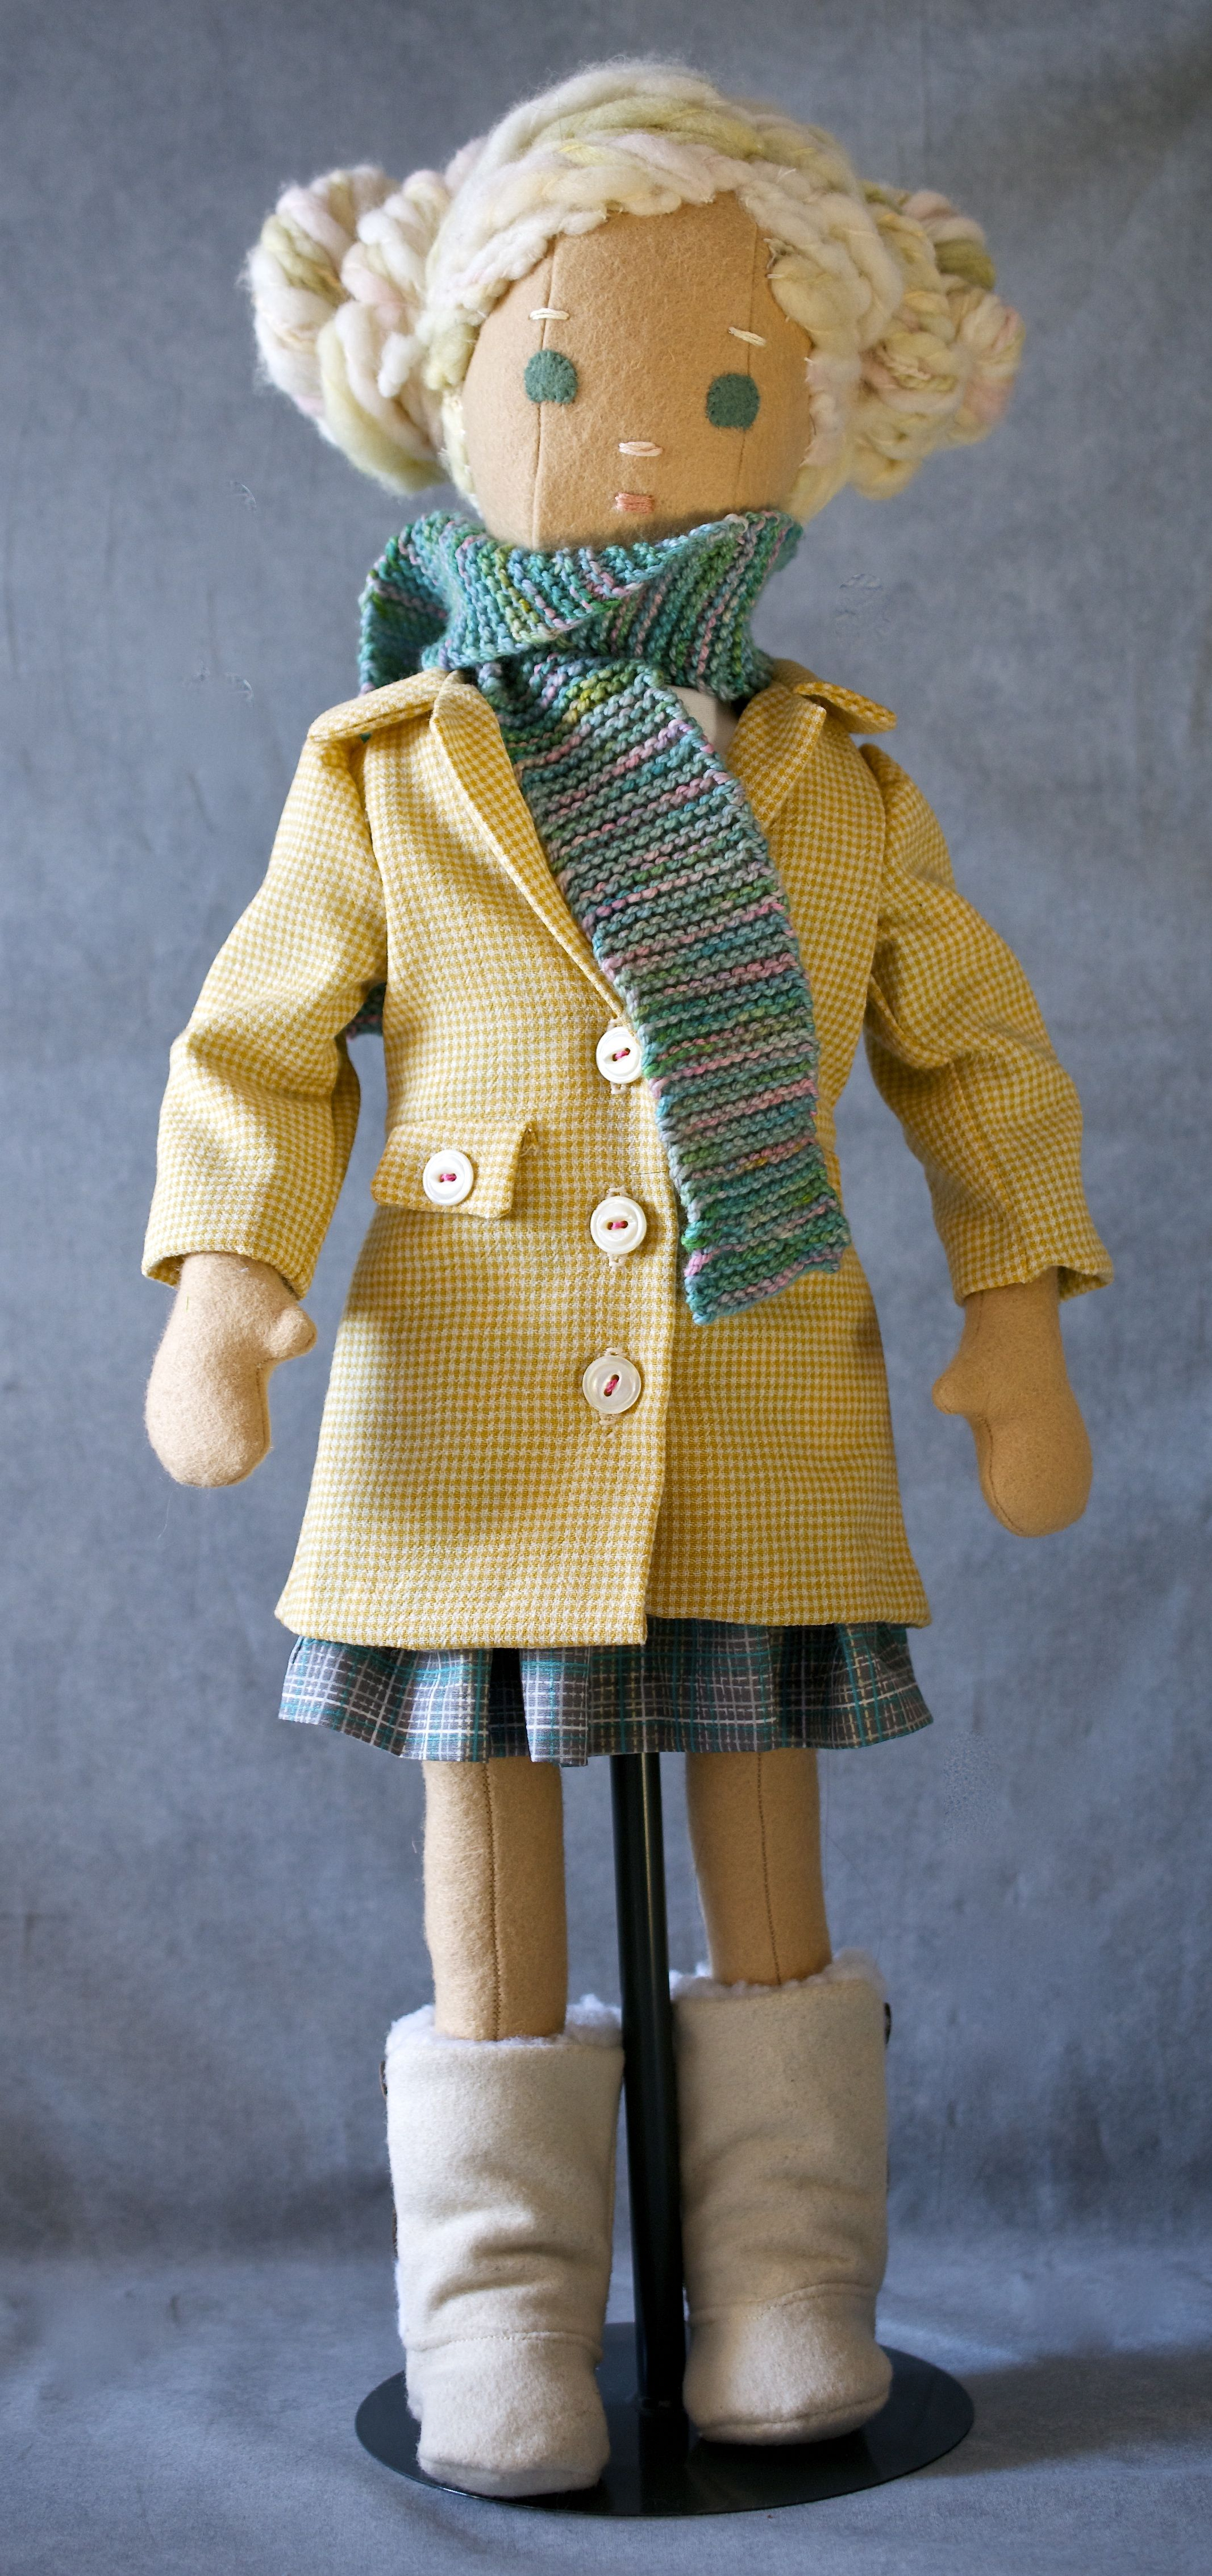 Coat, Scarf and Uggs2.jpg